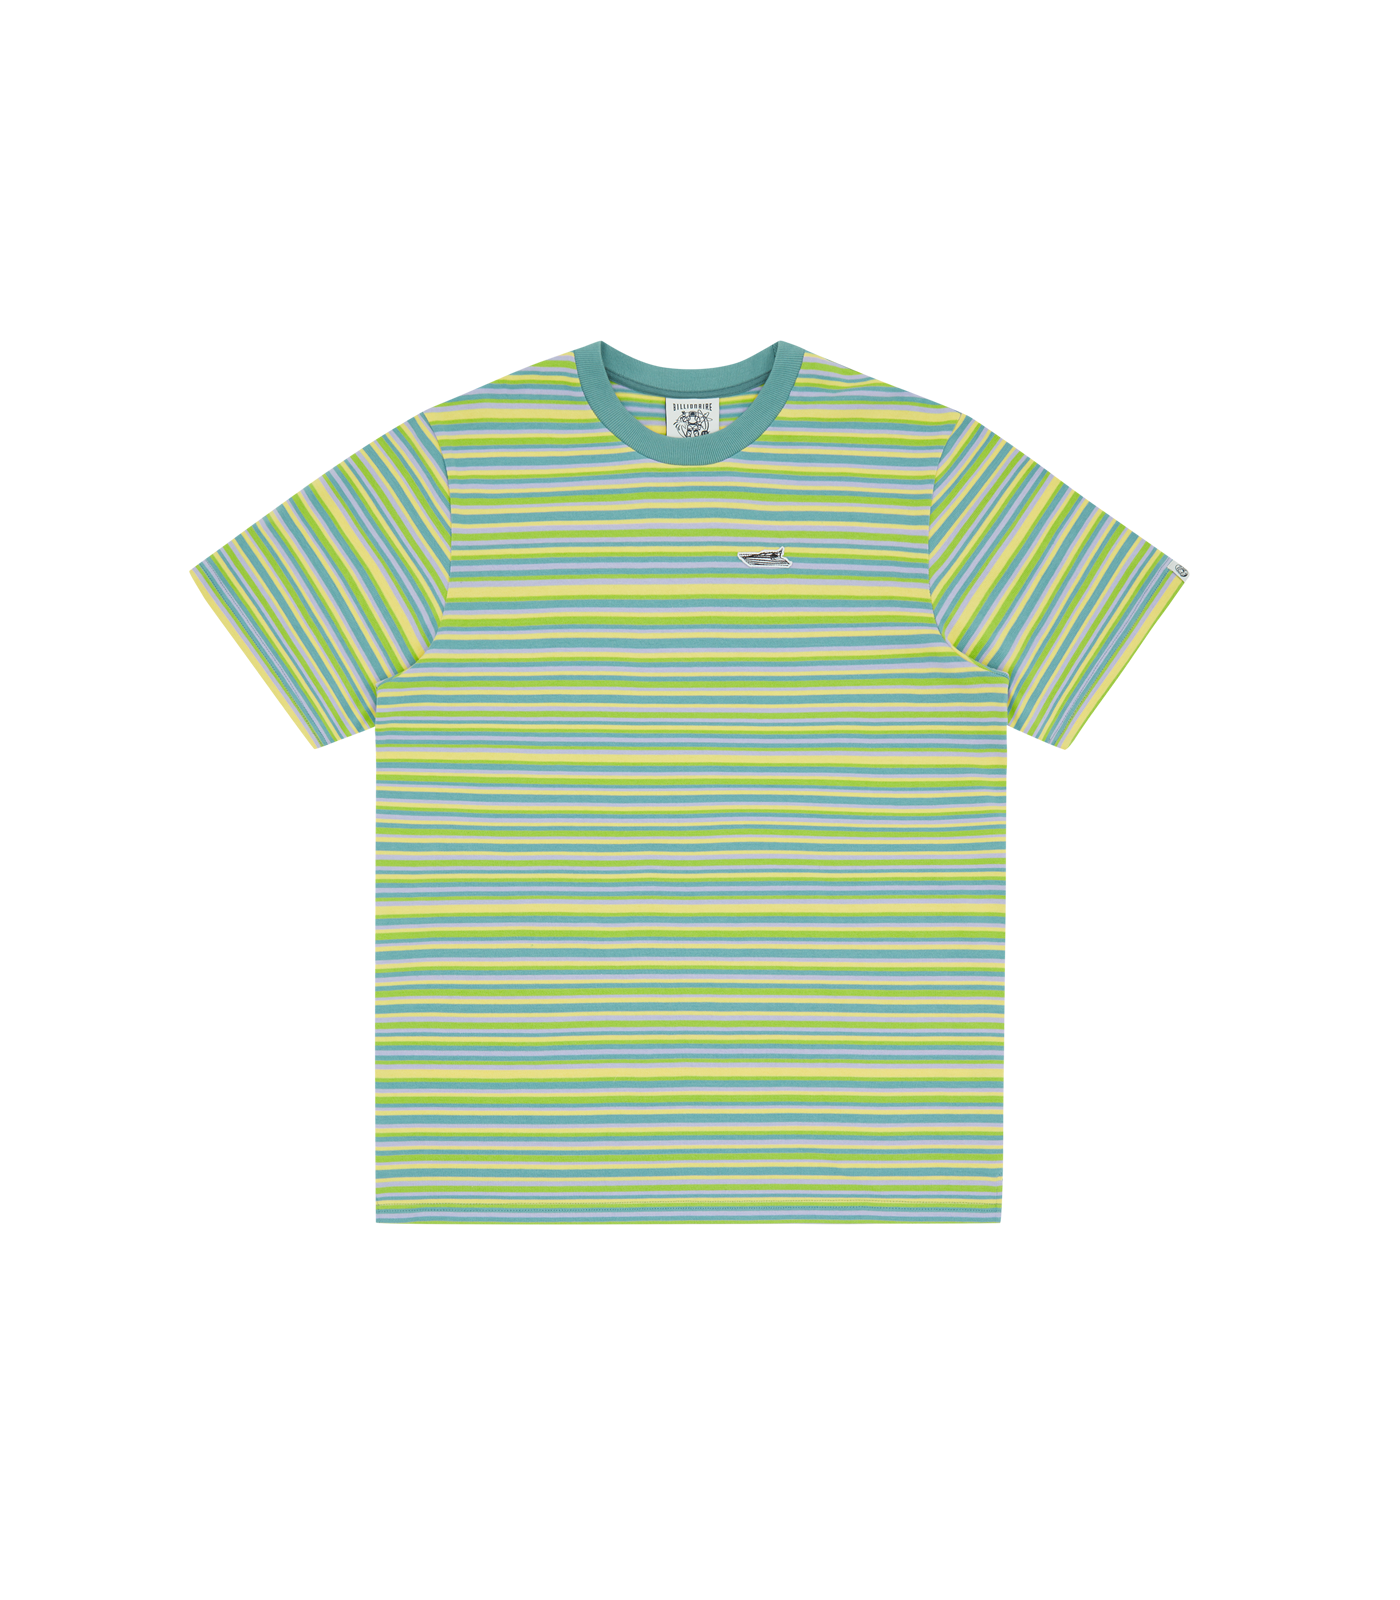 STRIPE KNIT T-SHIRT